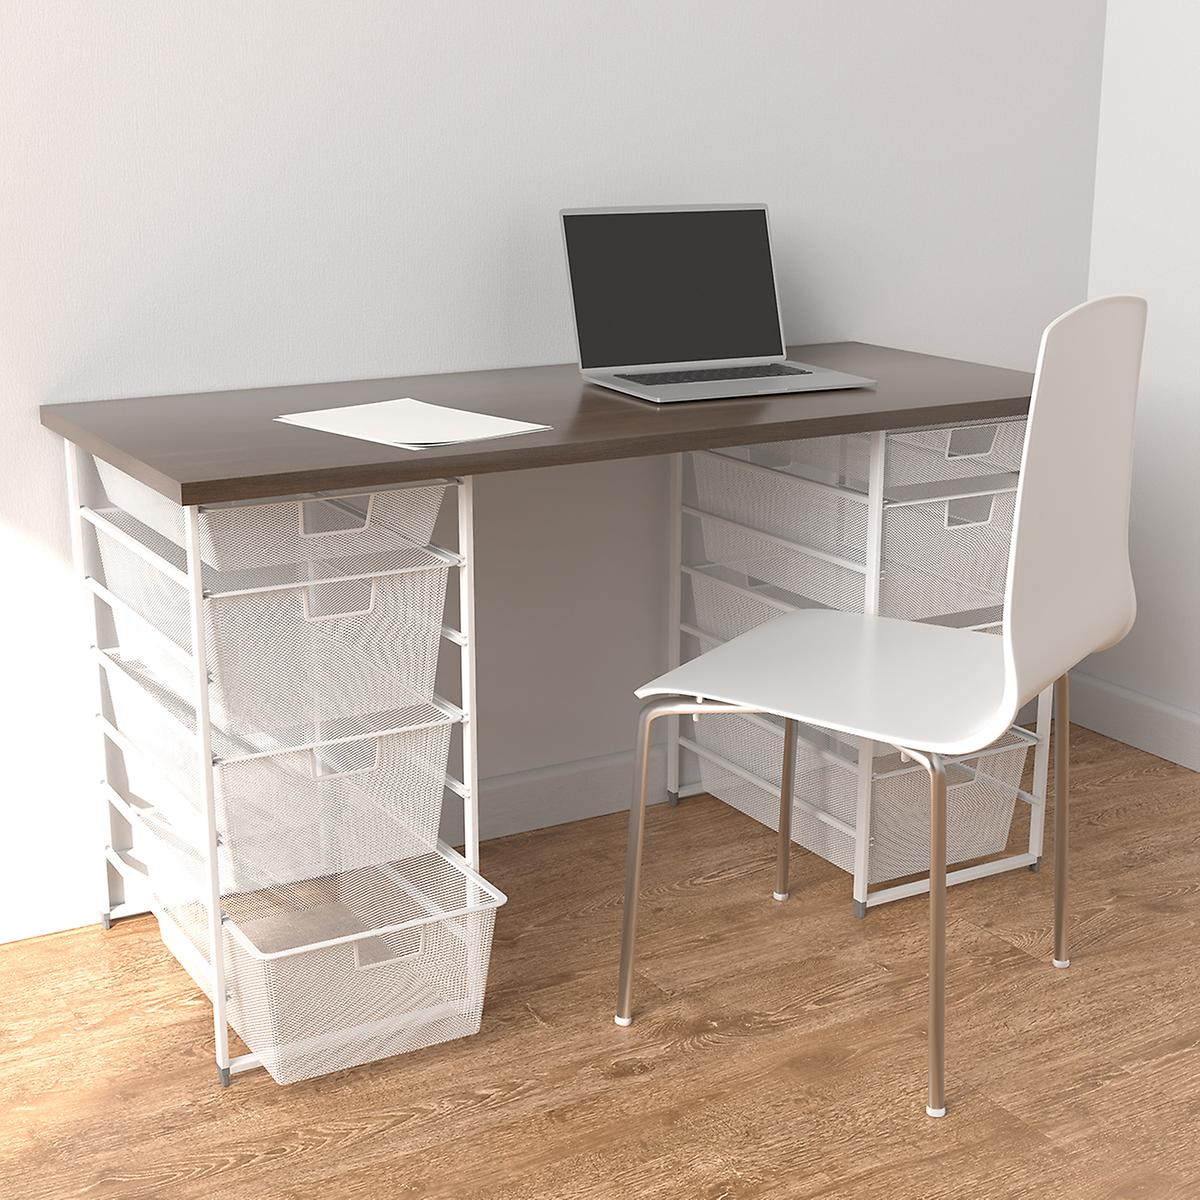 Elfa White & Driftwood Desk with Double Drawer